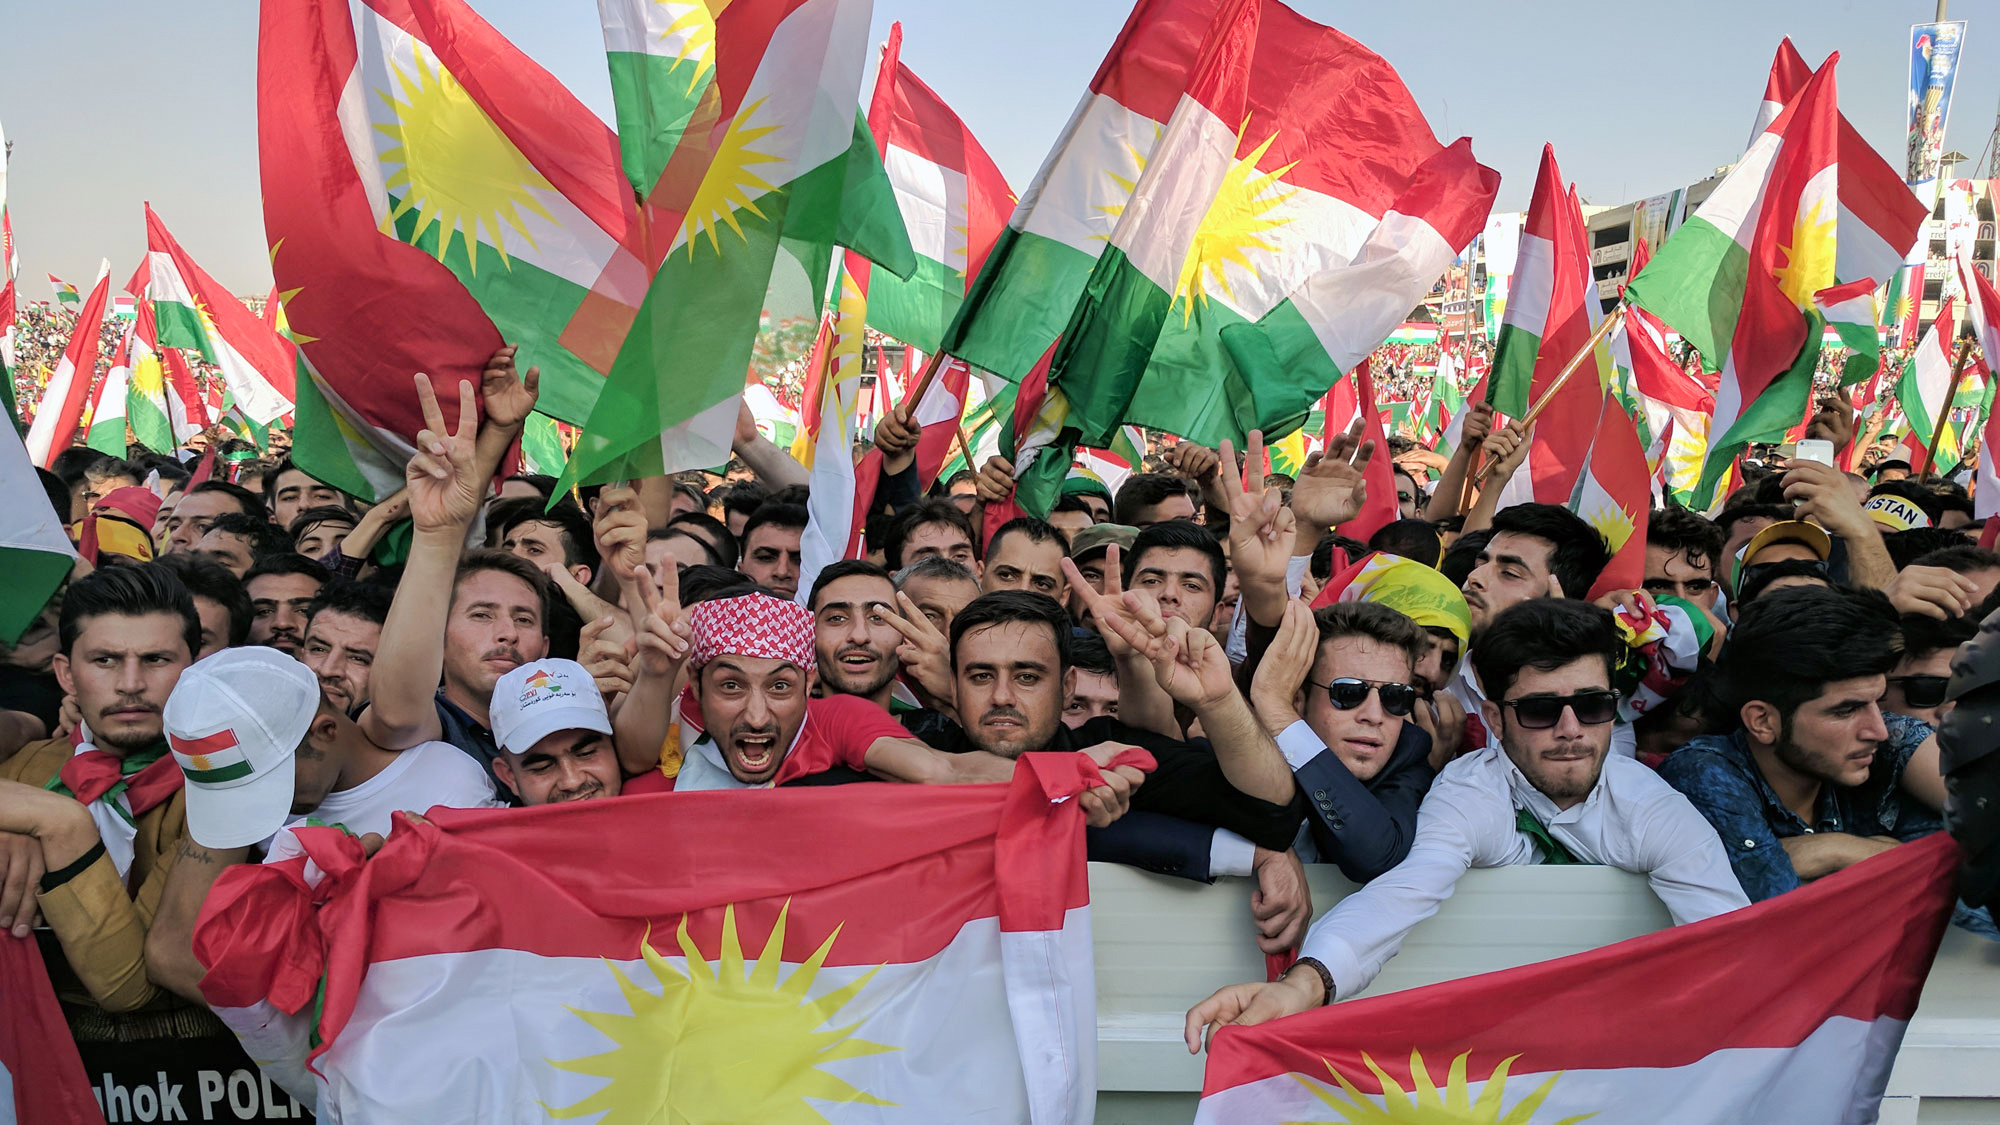 Tens of thousands turn out for a rally in Erbil, northern Iraq, in support of Kurdistan's independence referendum.